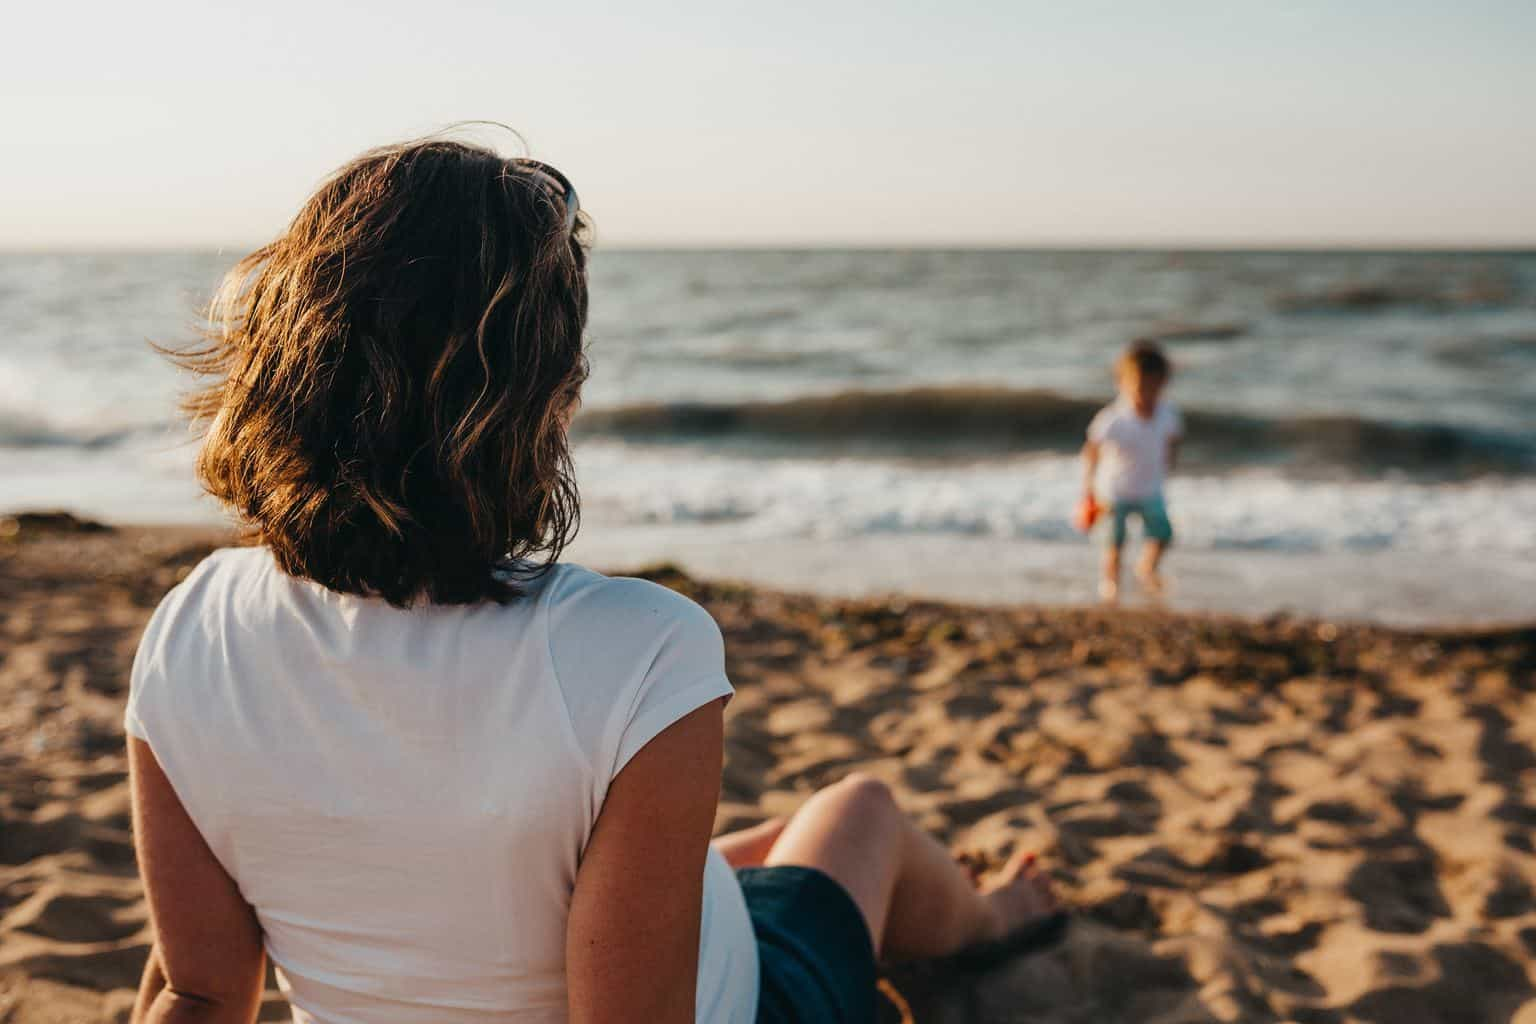 woman watching child playing on beach during daytime